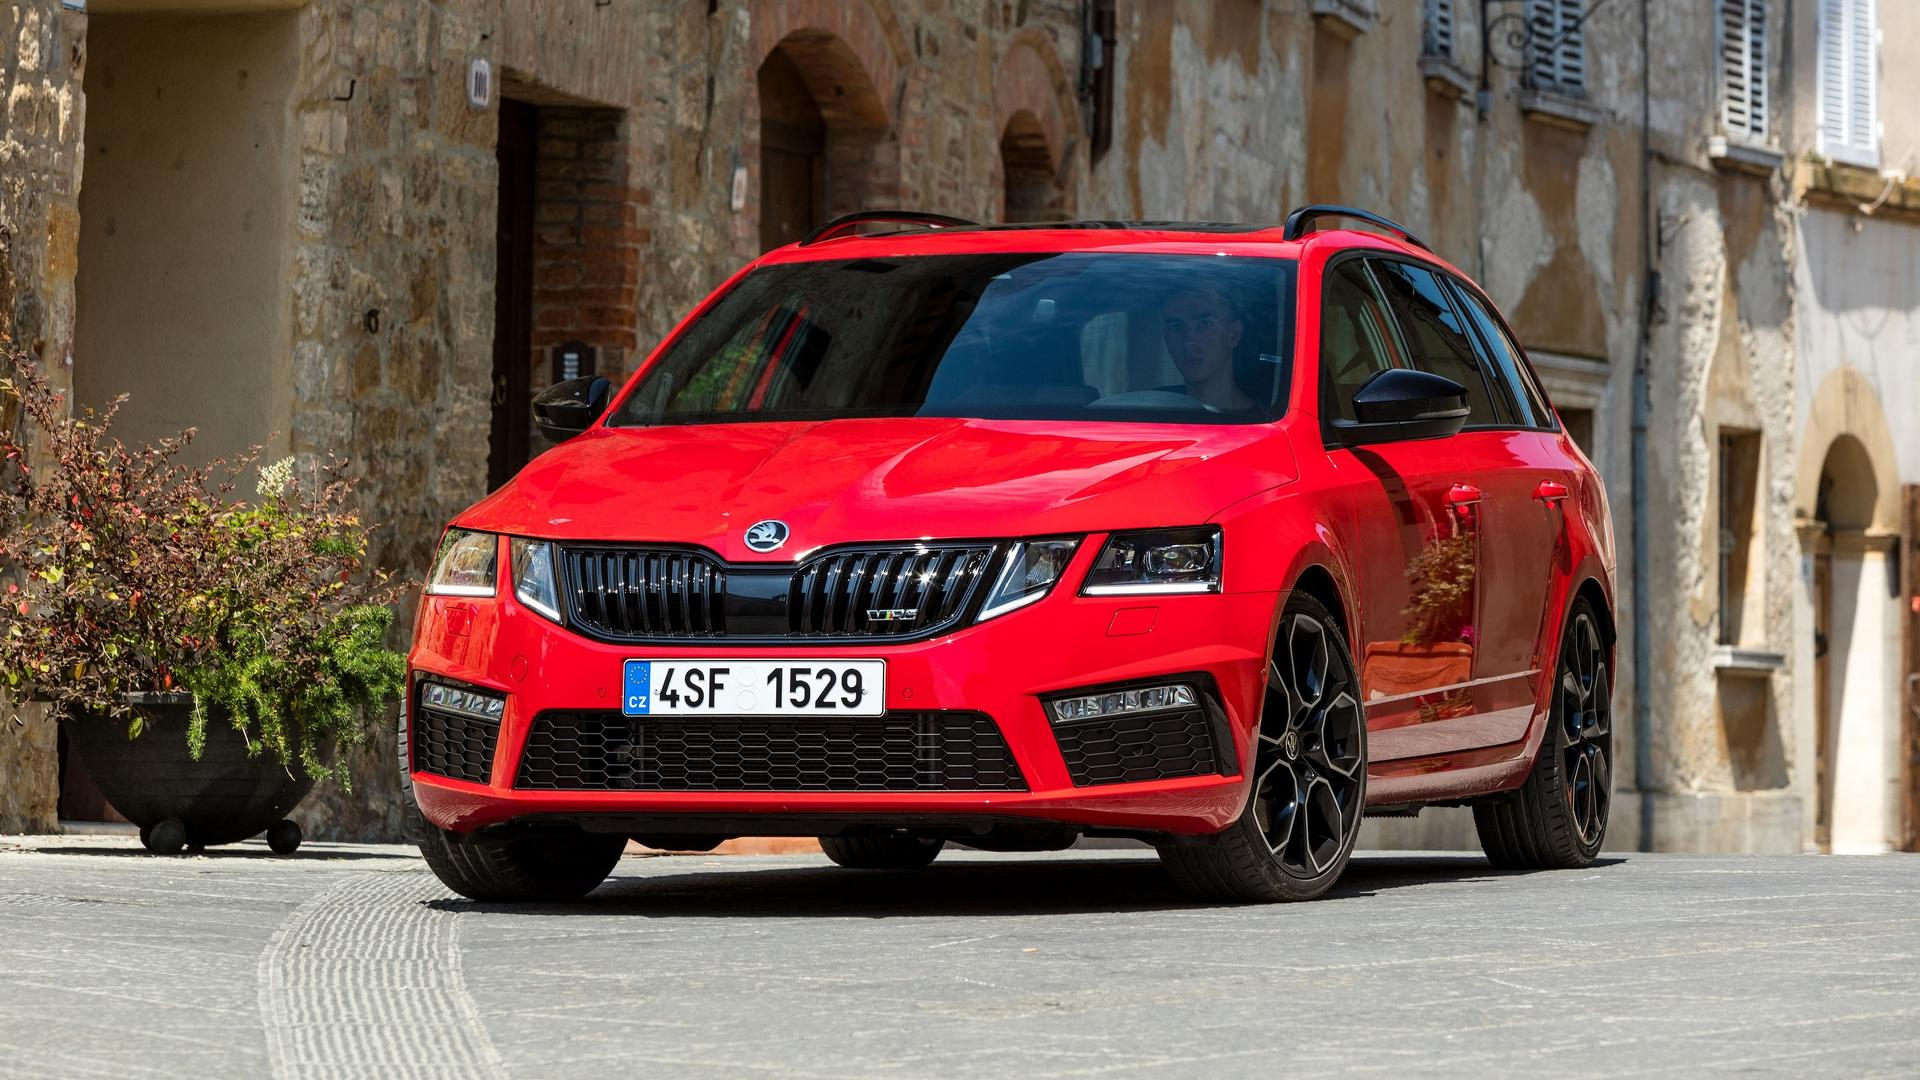 Skoda Octavia Rs 245 Shows Its Sporty Side In New Images